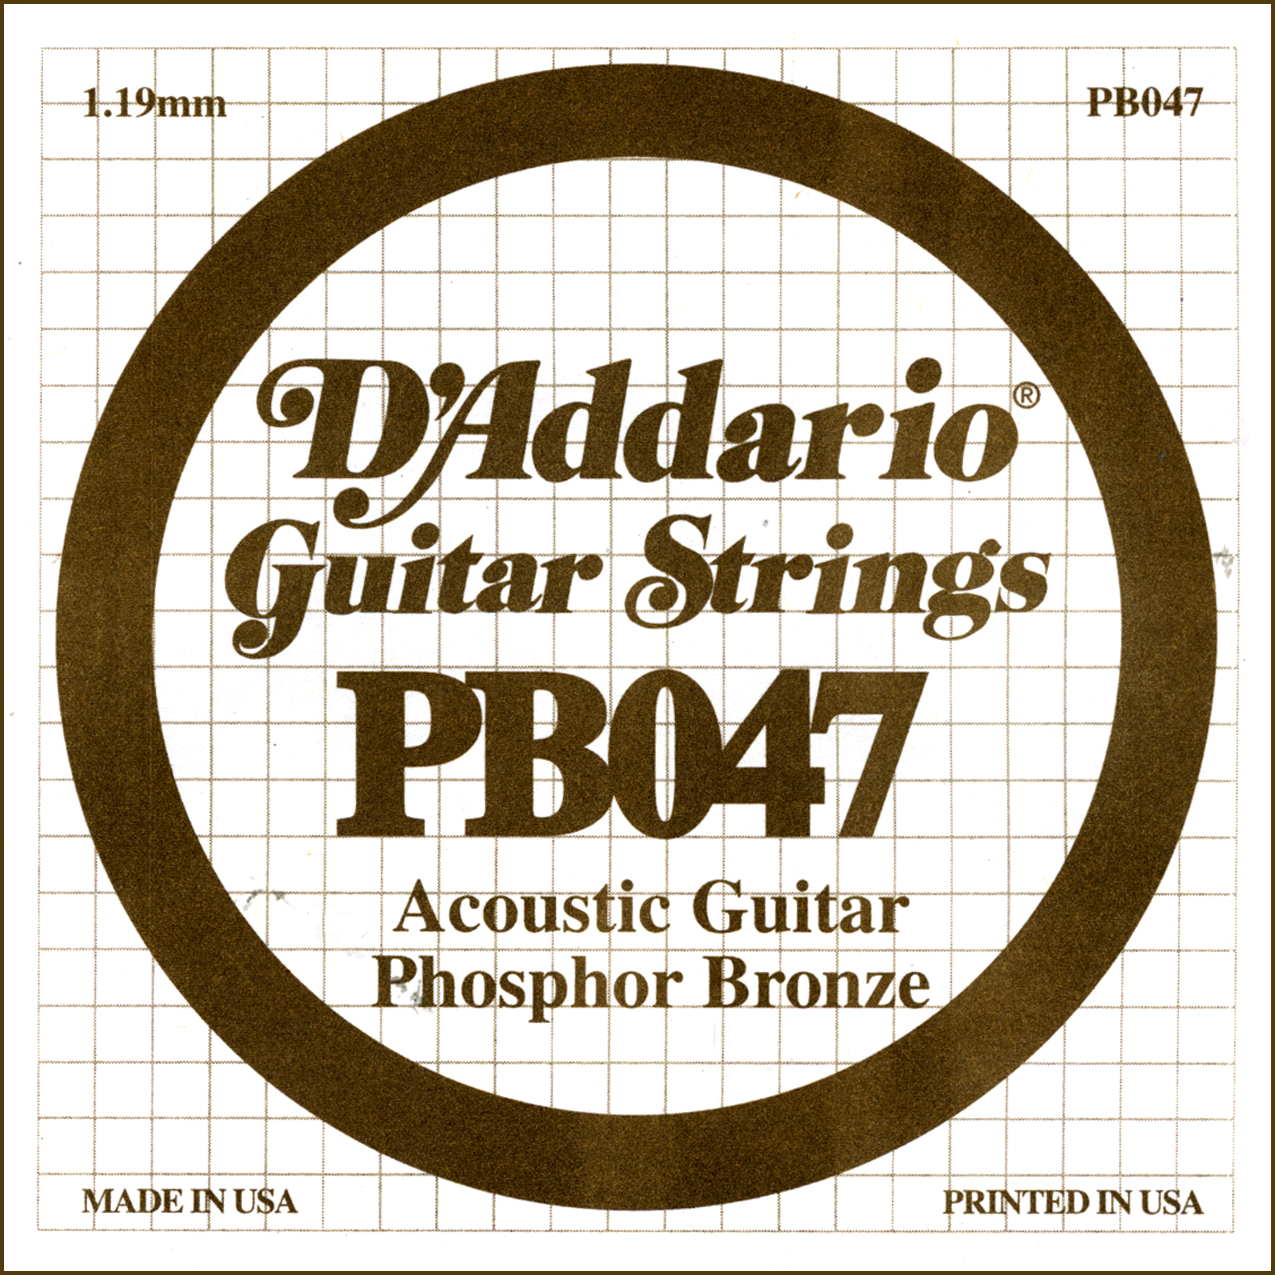 D'Addario Single Strings PBO47